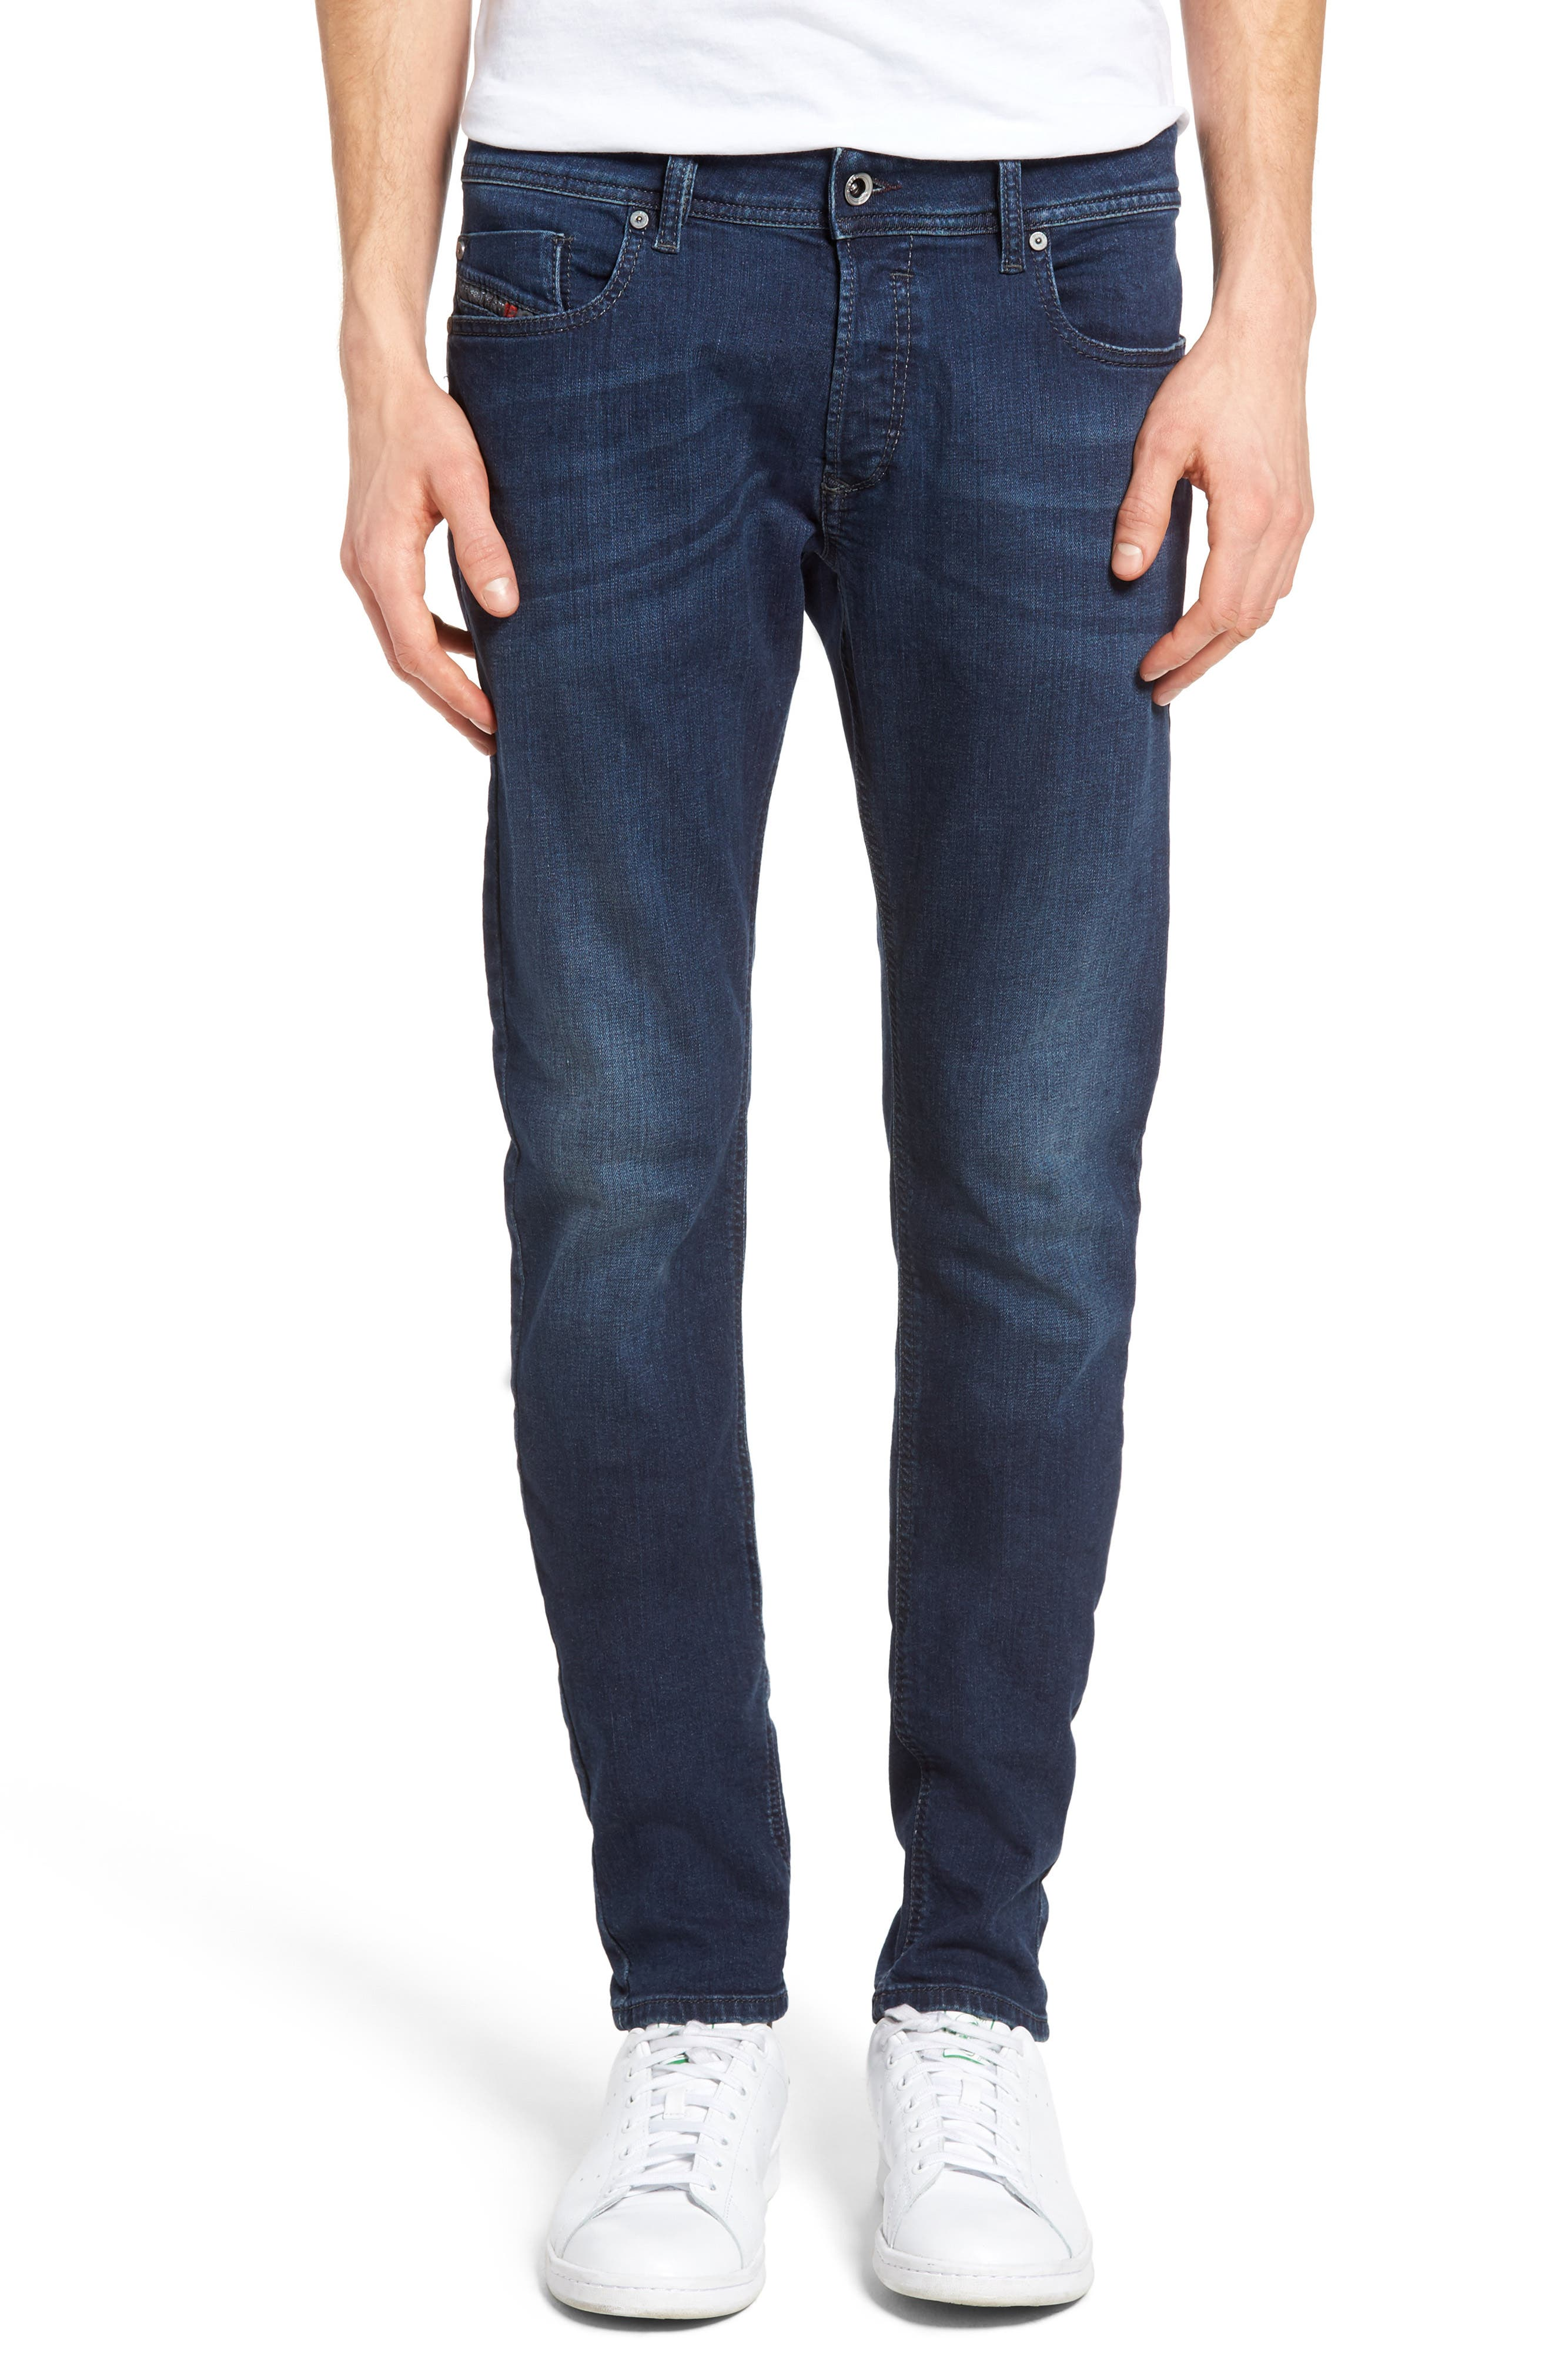 Sleenker Skinny Fit Jeans,                             Main thumbnail 1, color,                             400